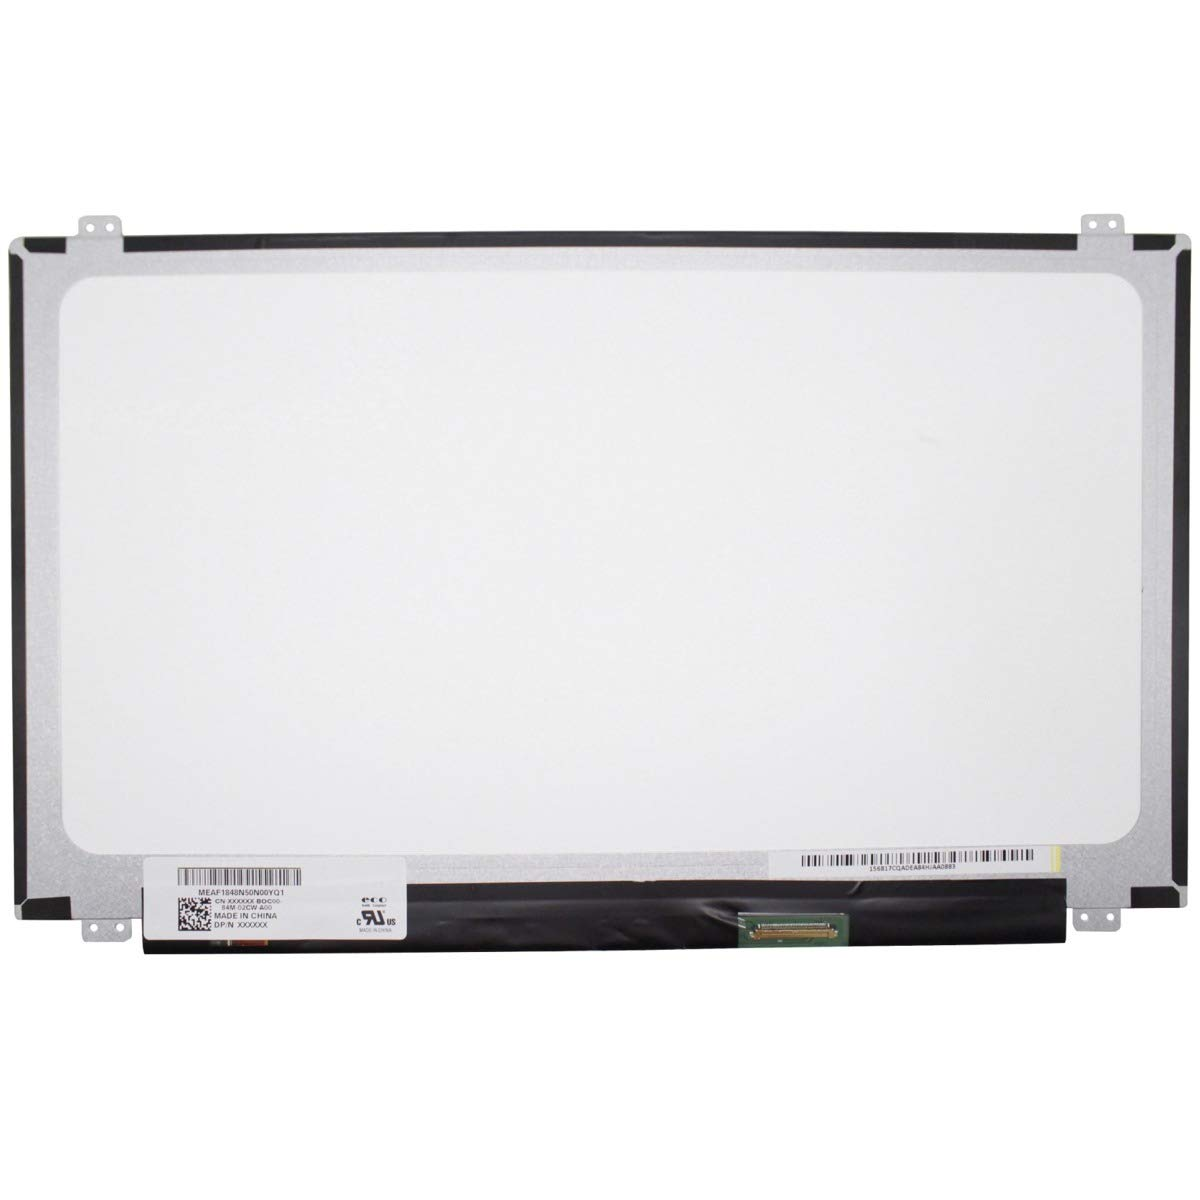 Wikiparts New 15.6 Matte Screen REPLACEMENT FOR HP PAVILION 3168NGW Laptop FHD LED LCD NON-IPS Display Panel